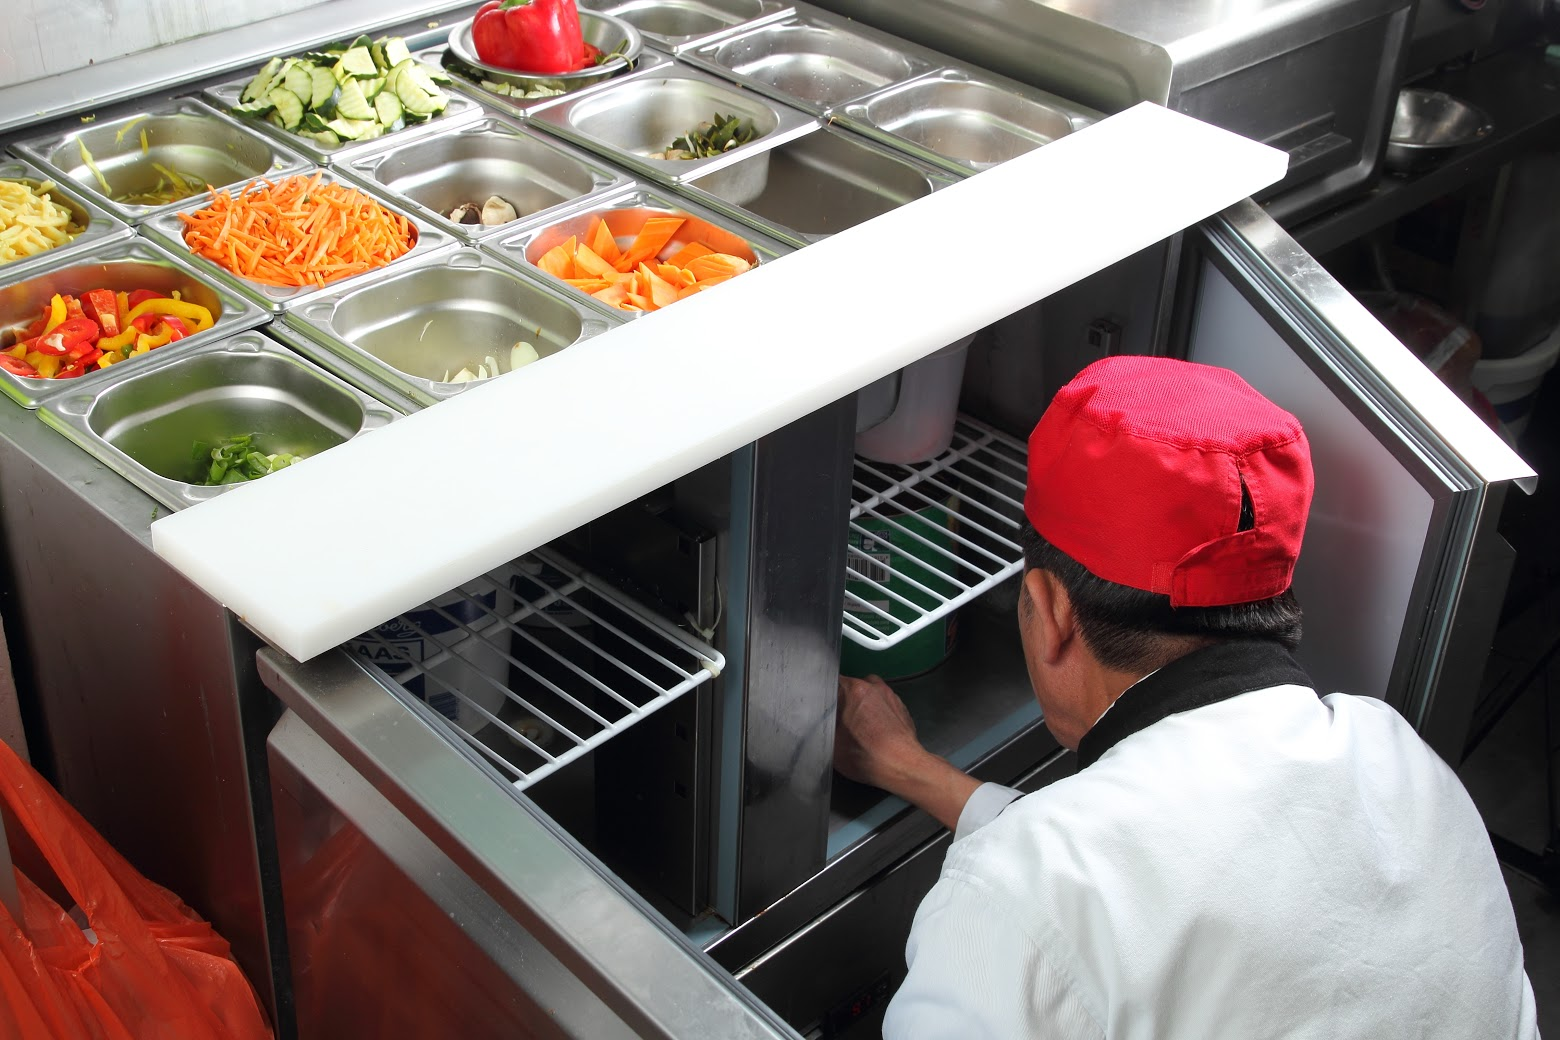 Benefits Of Preventative Maintenance For Kitchen Equipment